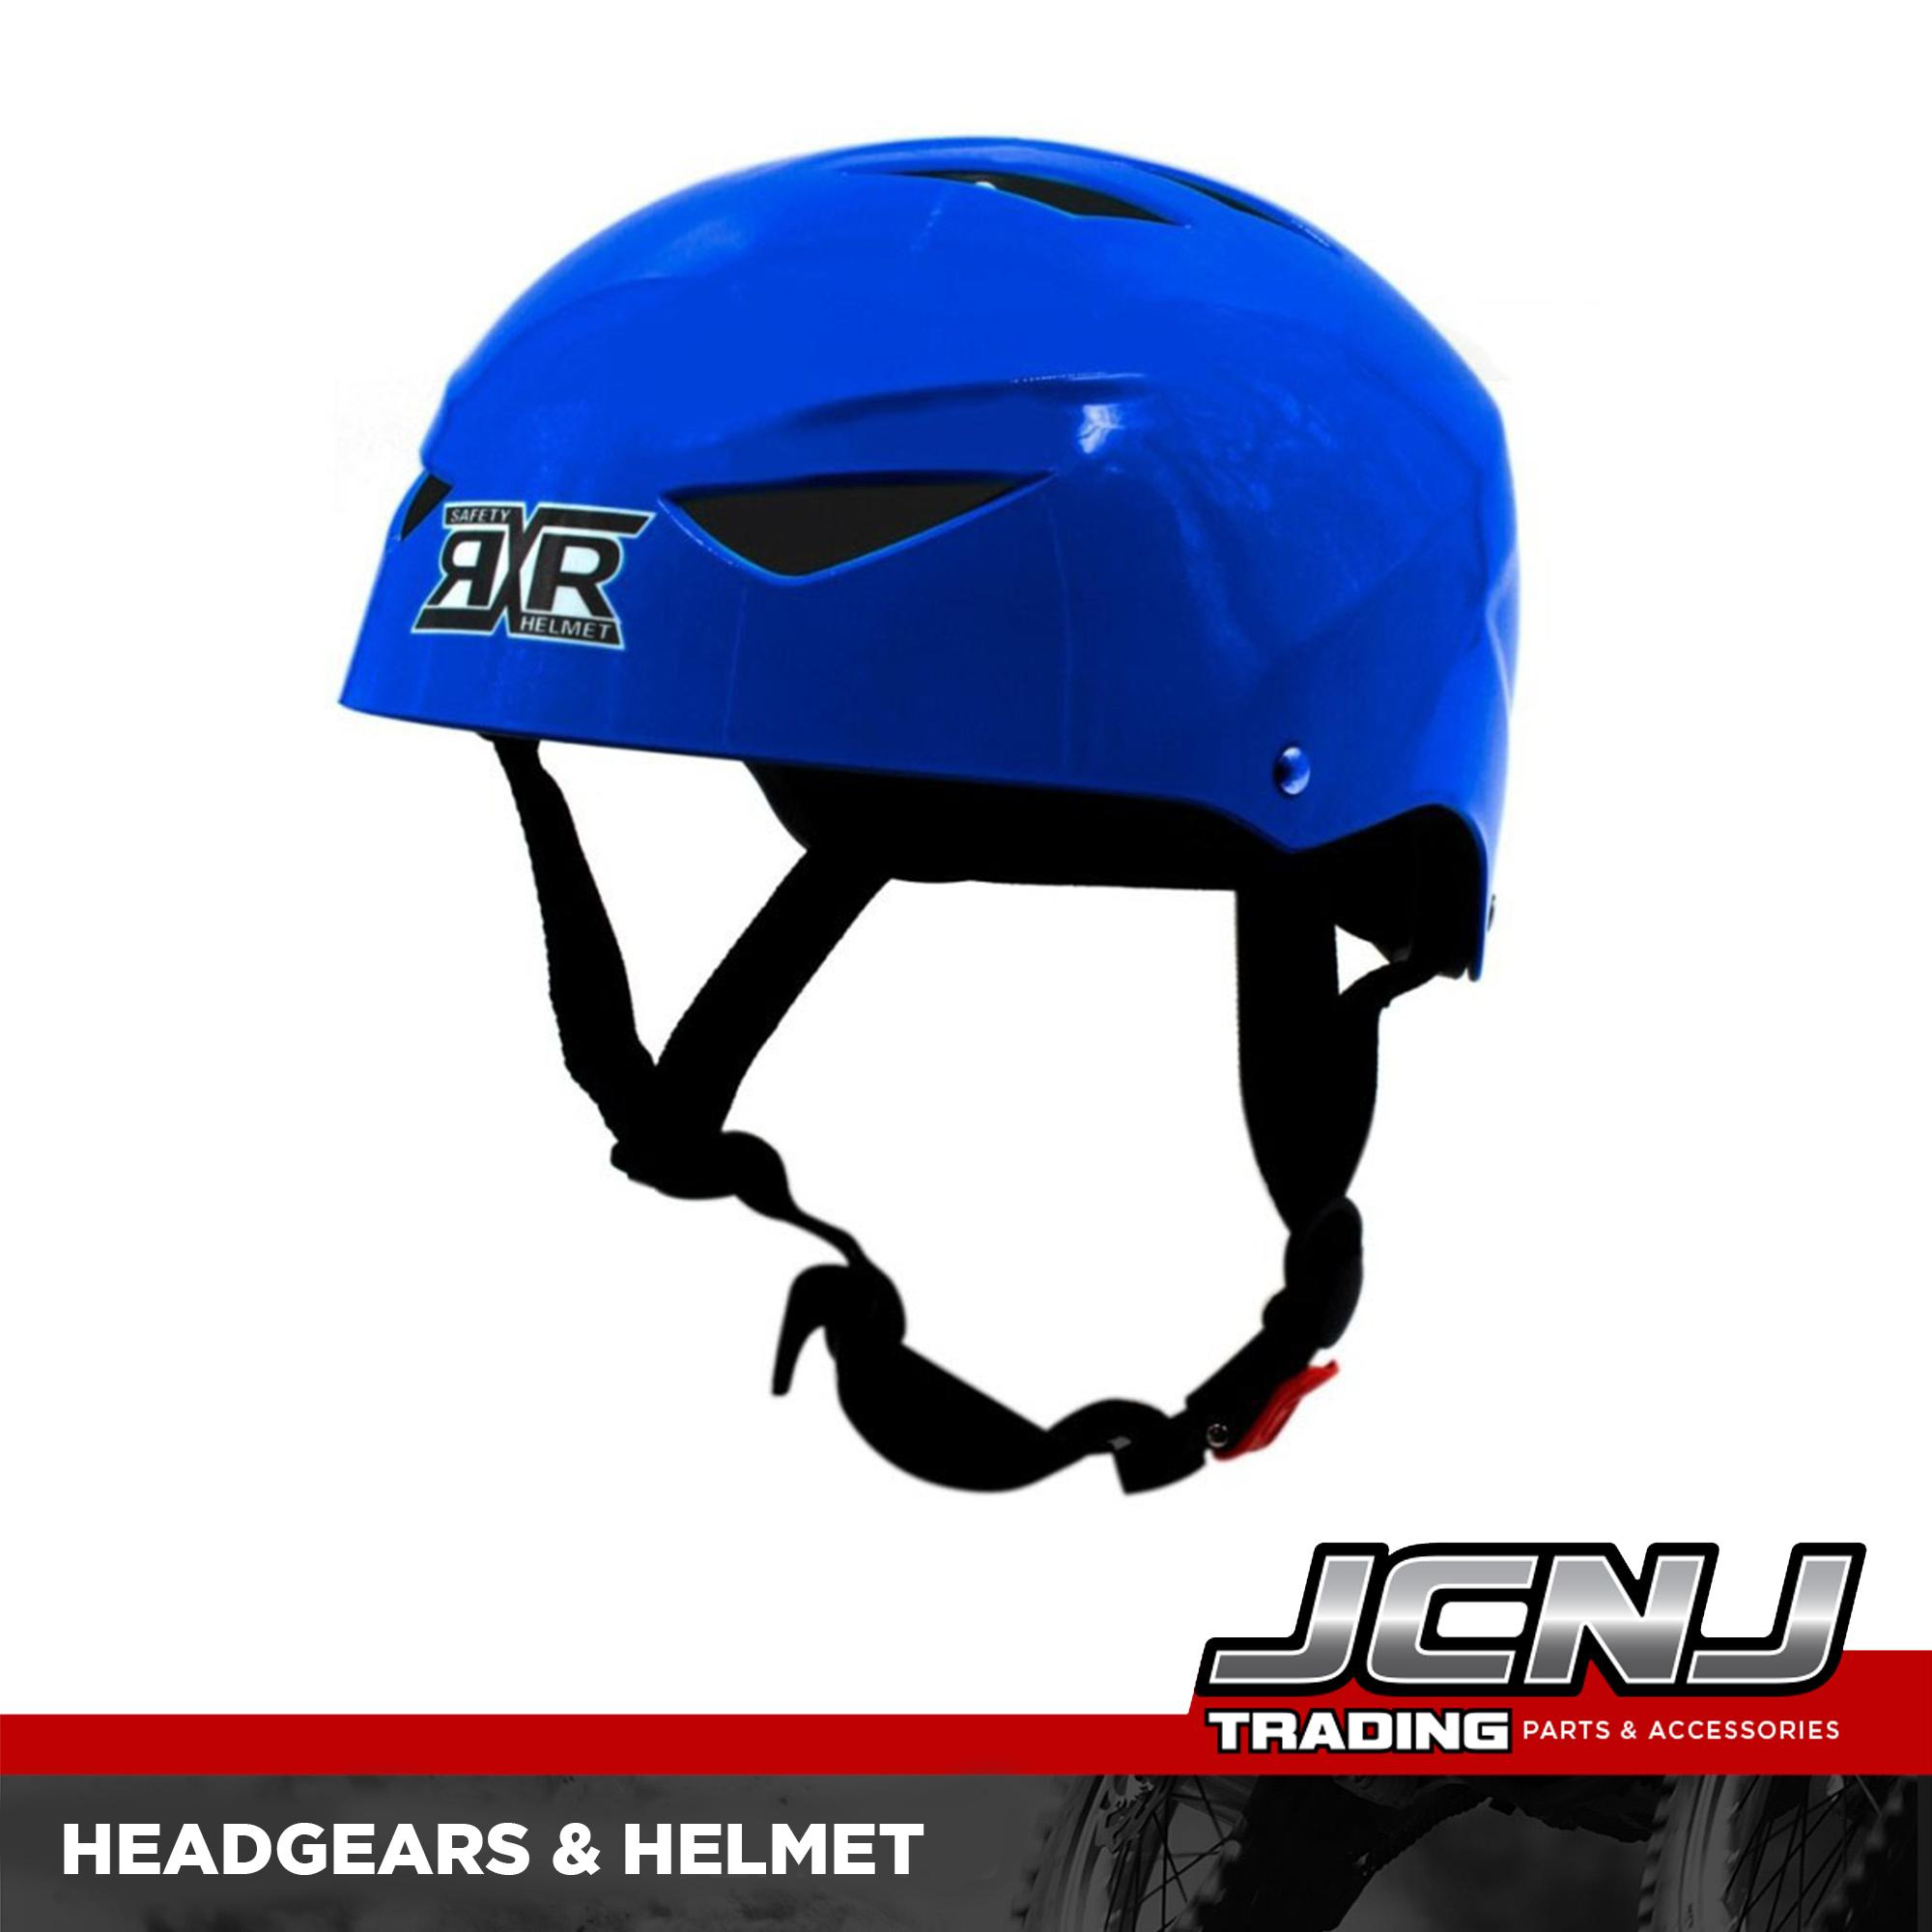 Helmets For Sale Motorcycle Online Brands Prices Helm Glossy Racing Spirit White Blue Reviews In Philippines